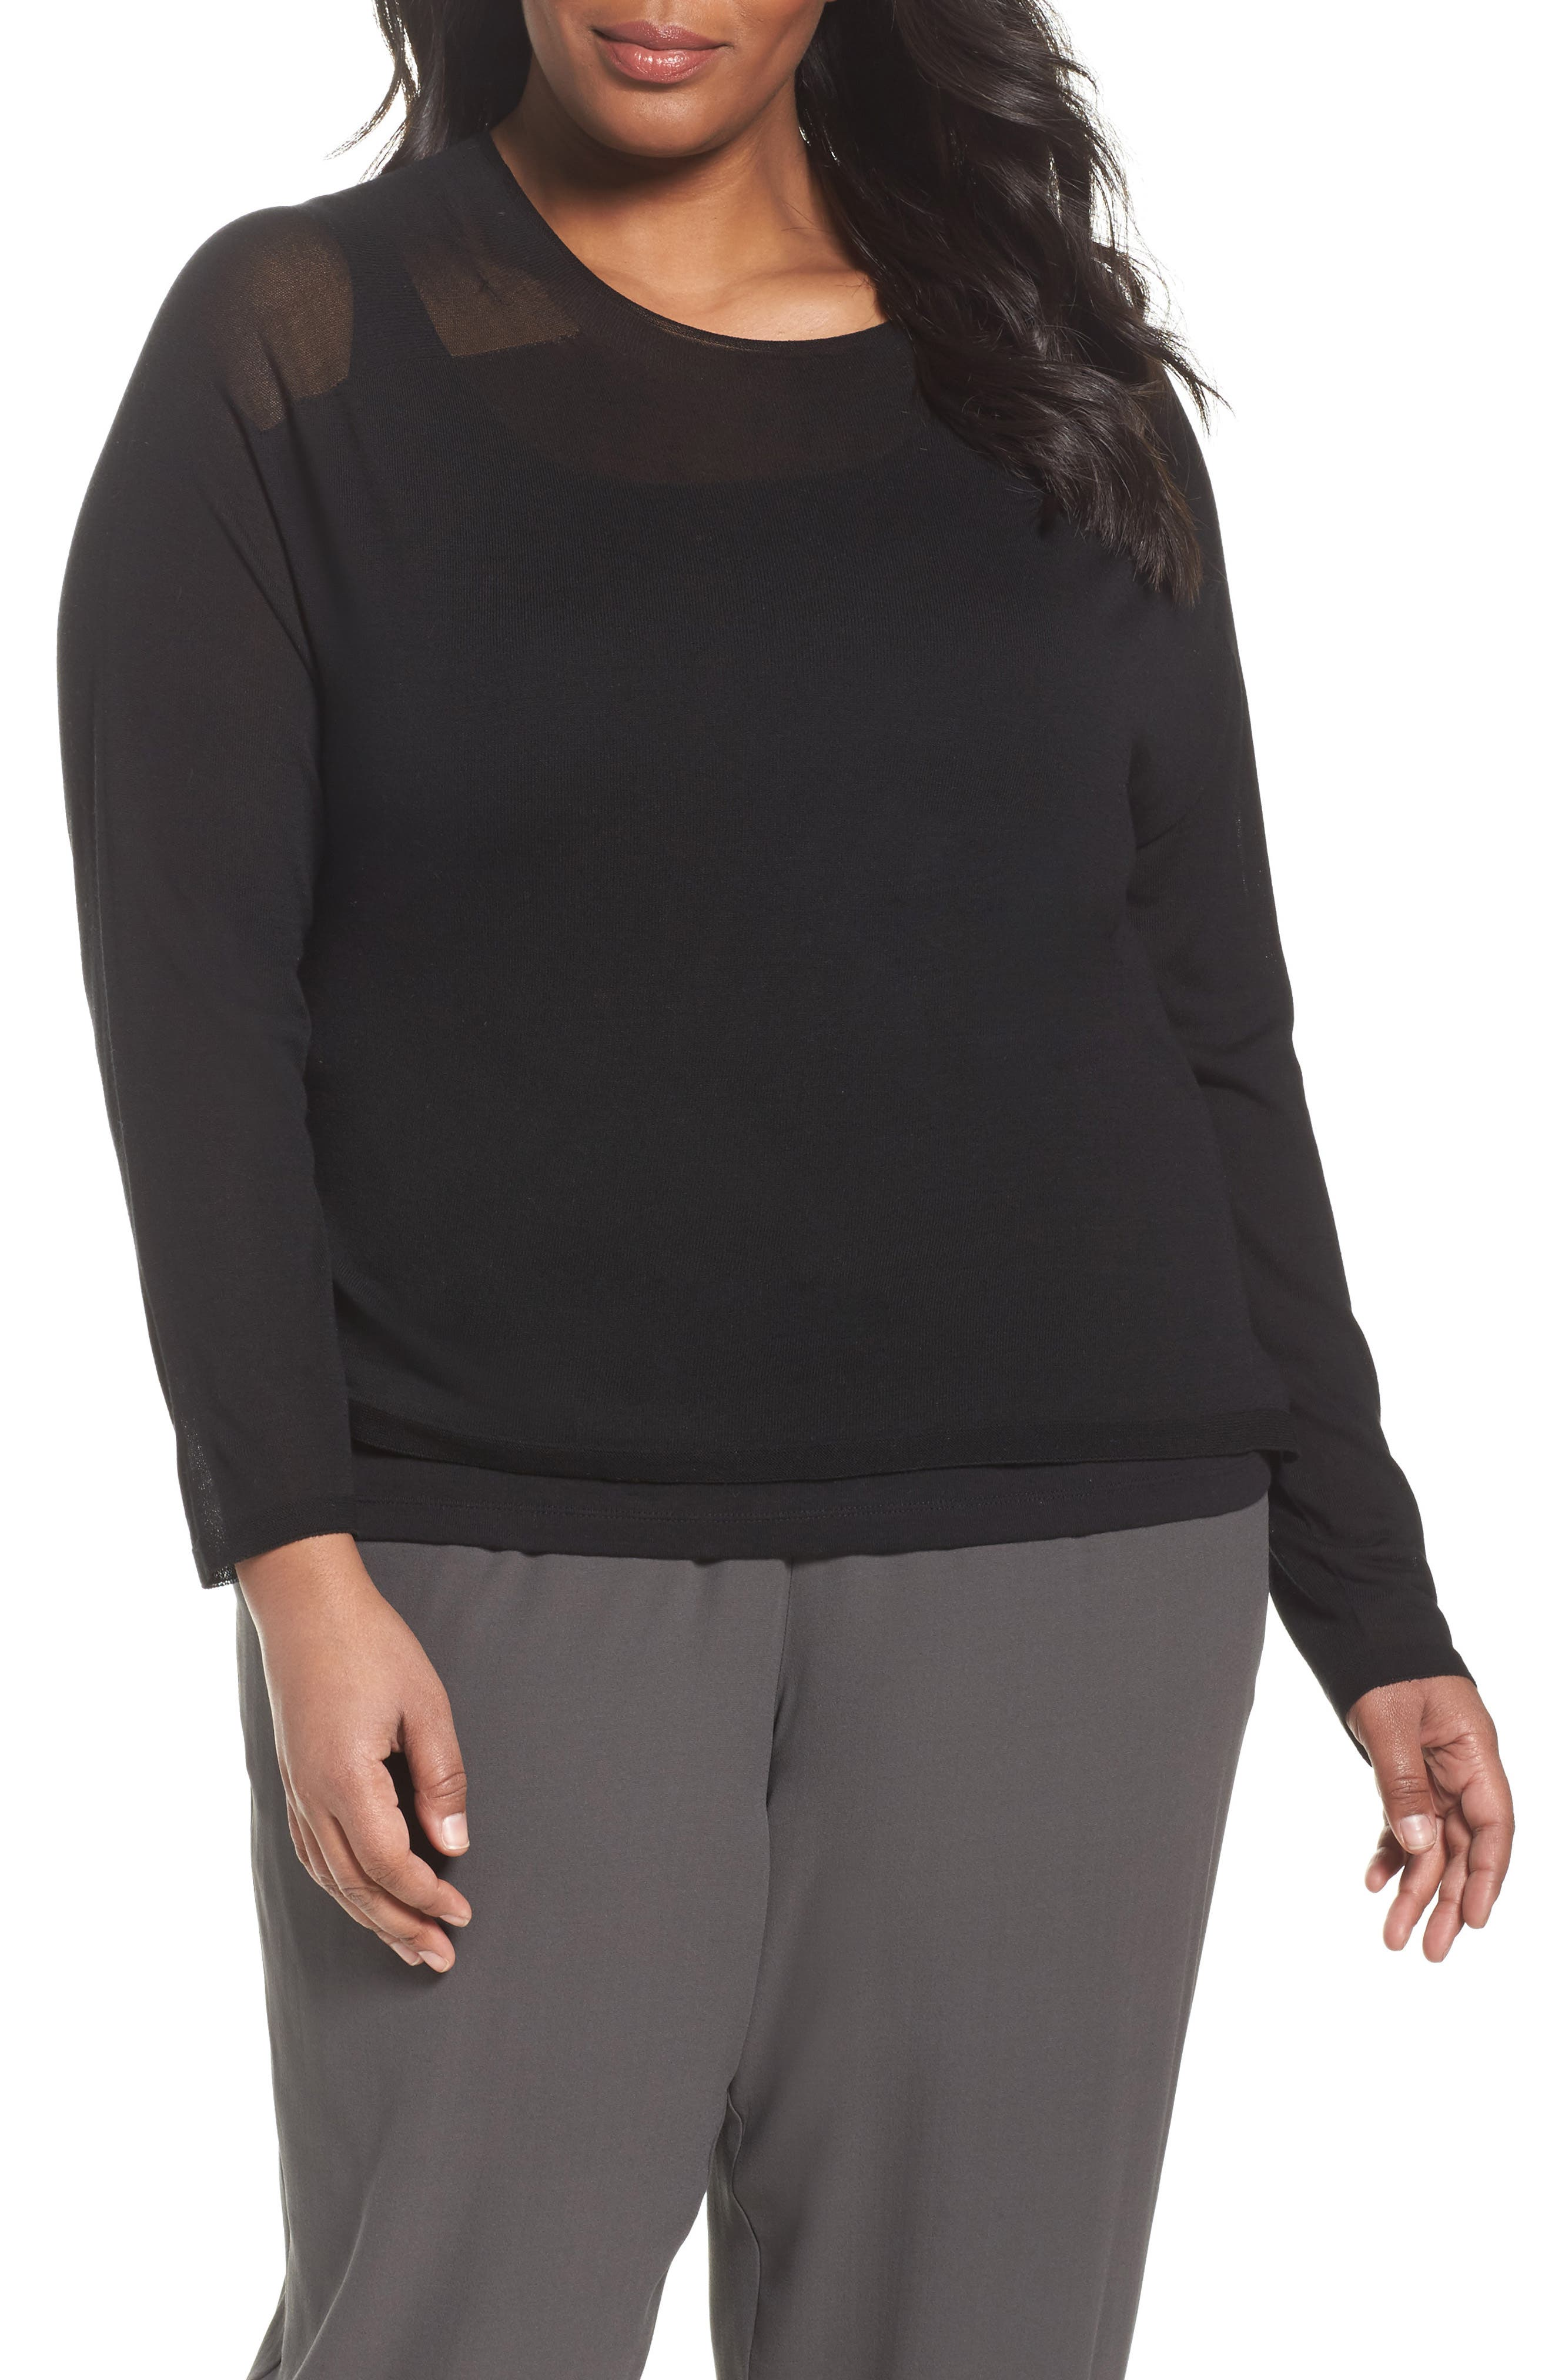 Alternate Image 1 Selected - Eileen Fisher Tencel® Knit Top (Plus Size)